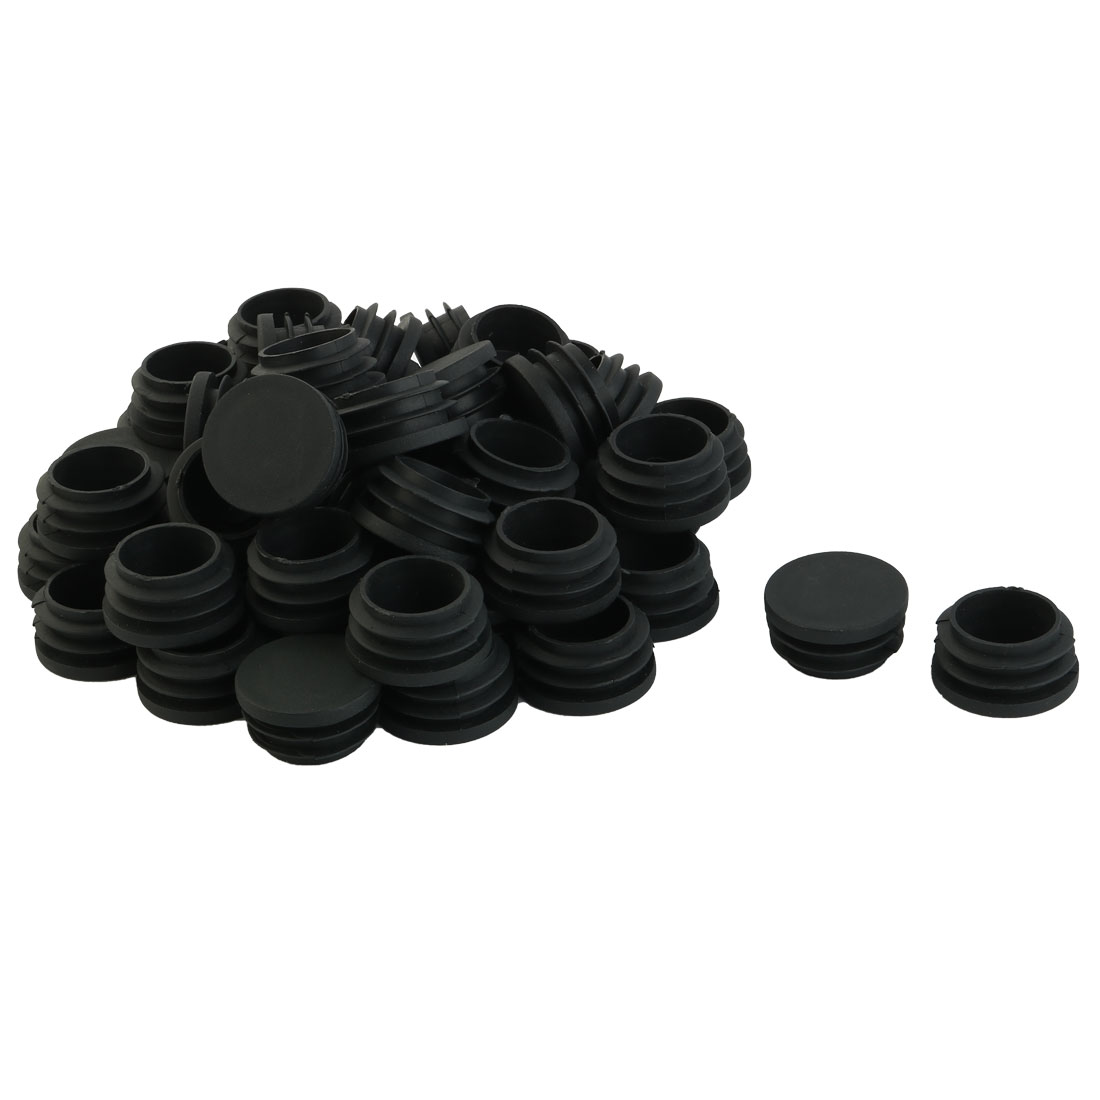 Family Plastic Chair Legs Cap Round Tube Insert Black 31mm Diameter 50 Pcs